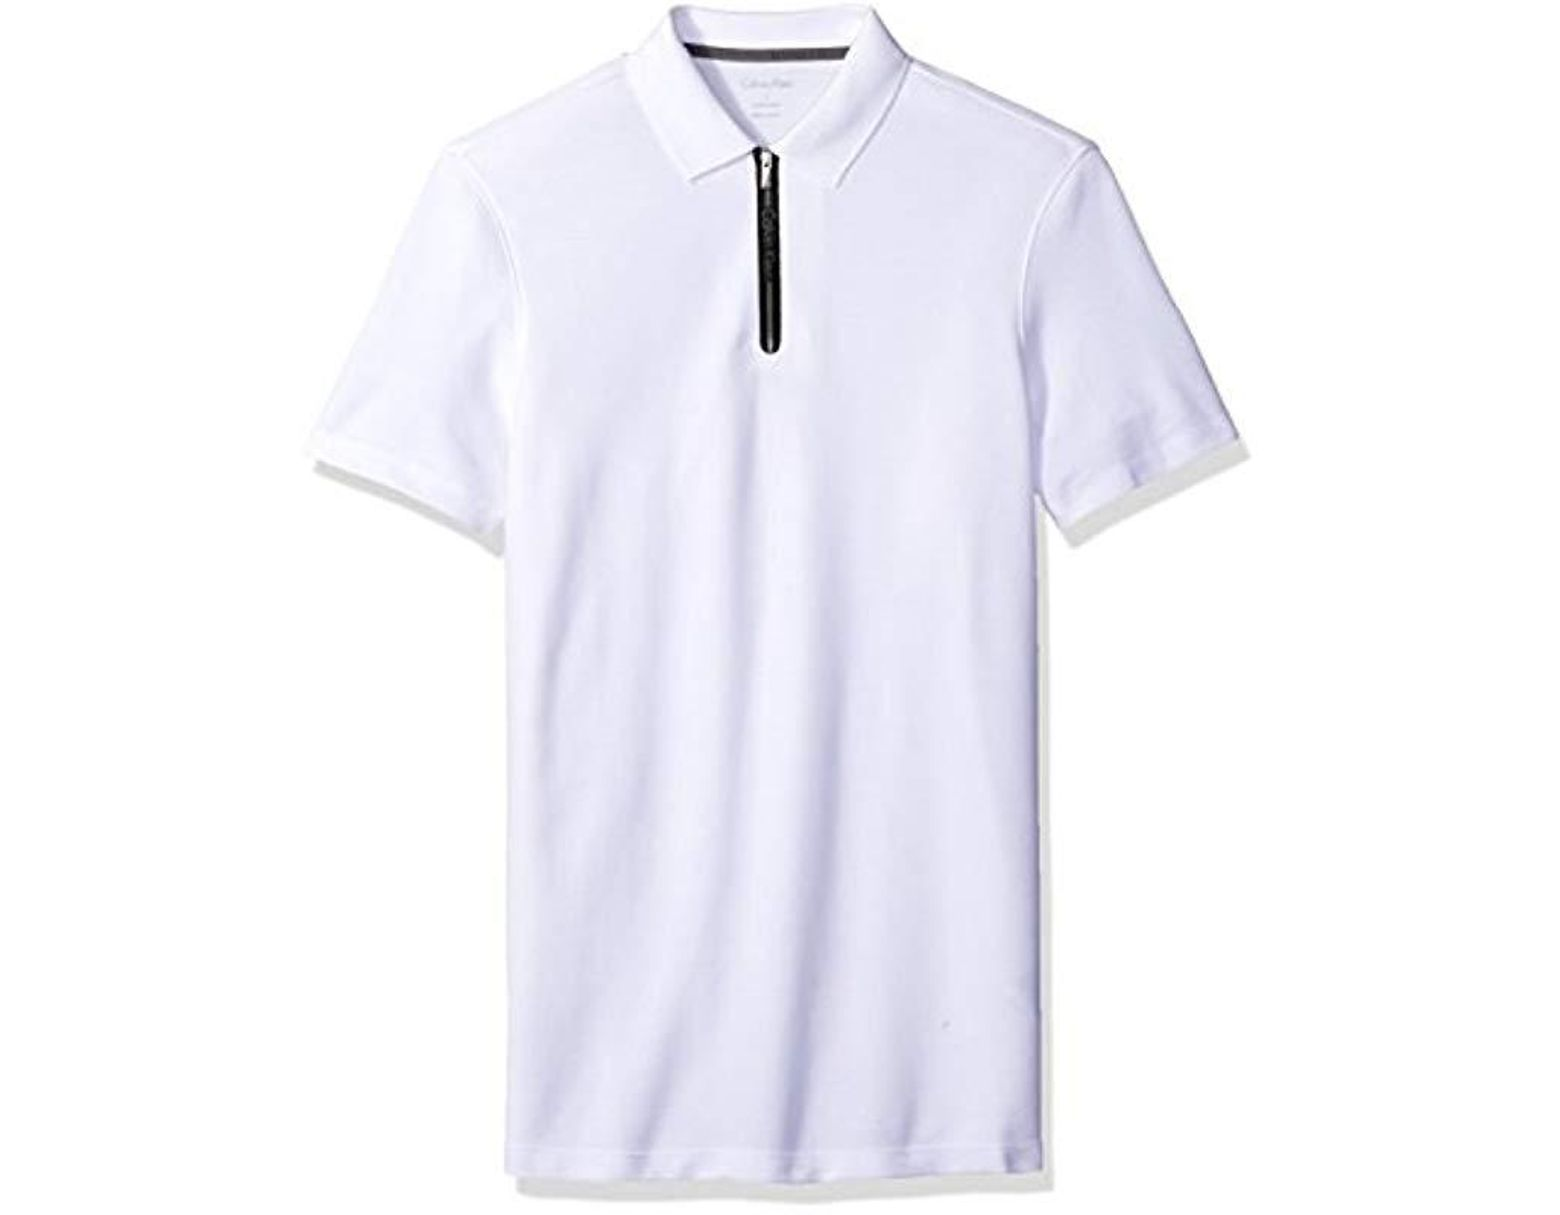 4318922d04a Calvin Klein Short Sleeve Two Tone Pique Polo Shirt in White for Men - Lyst